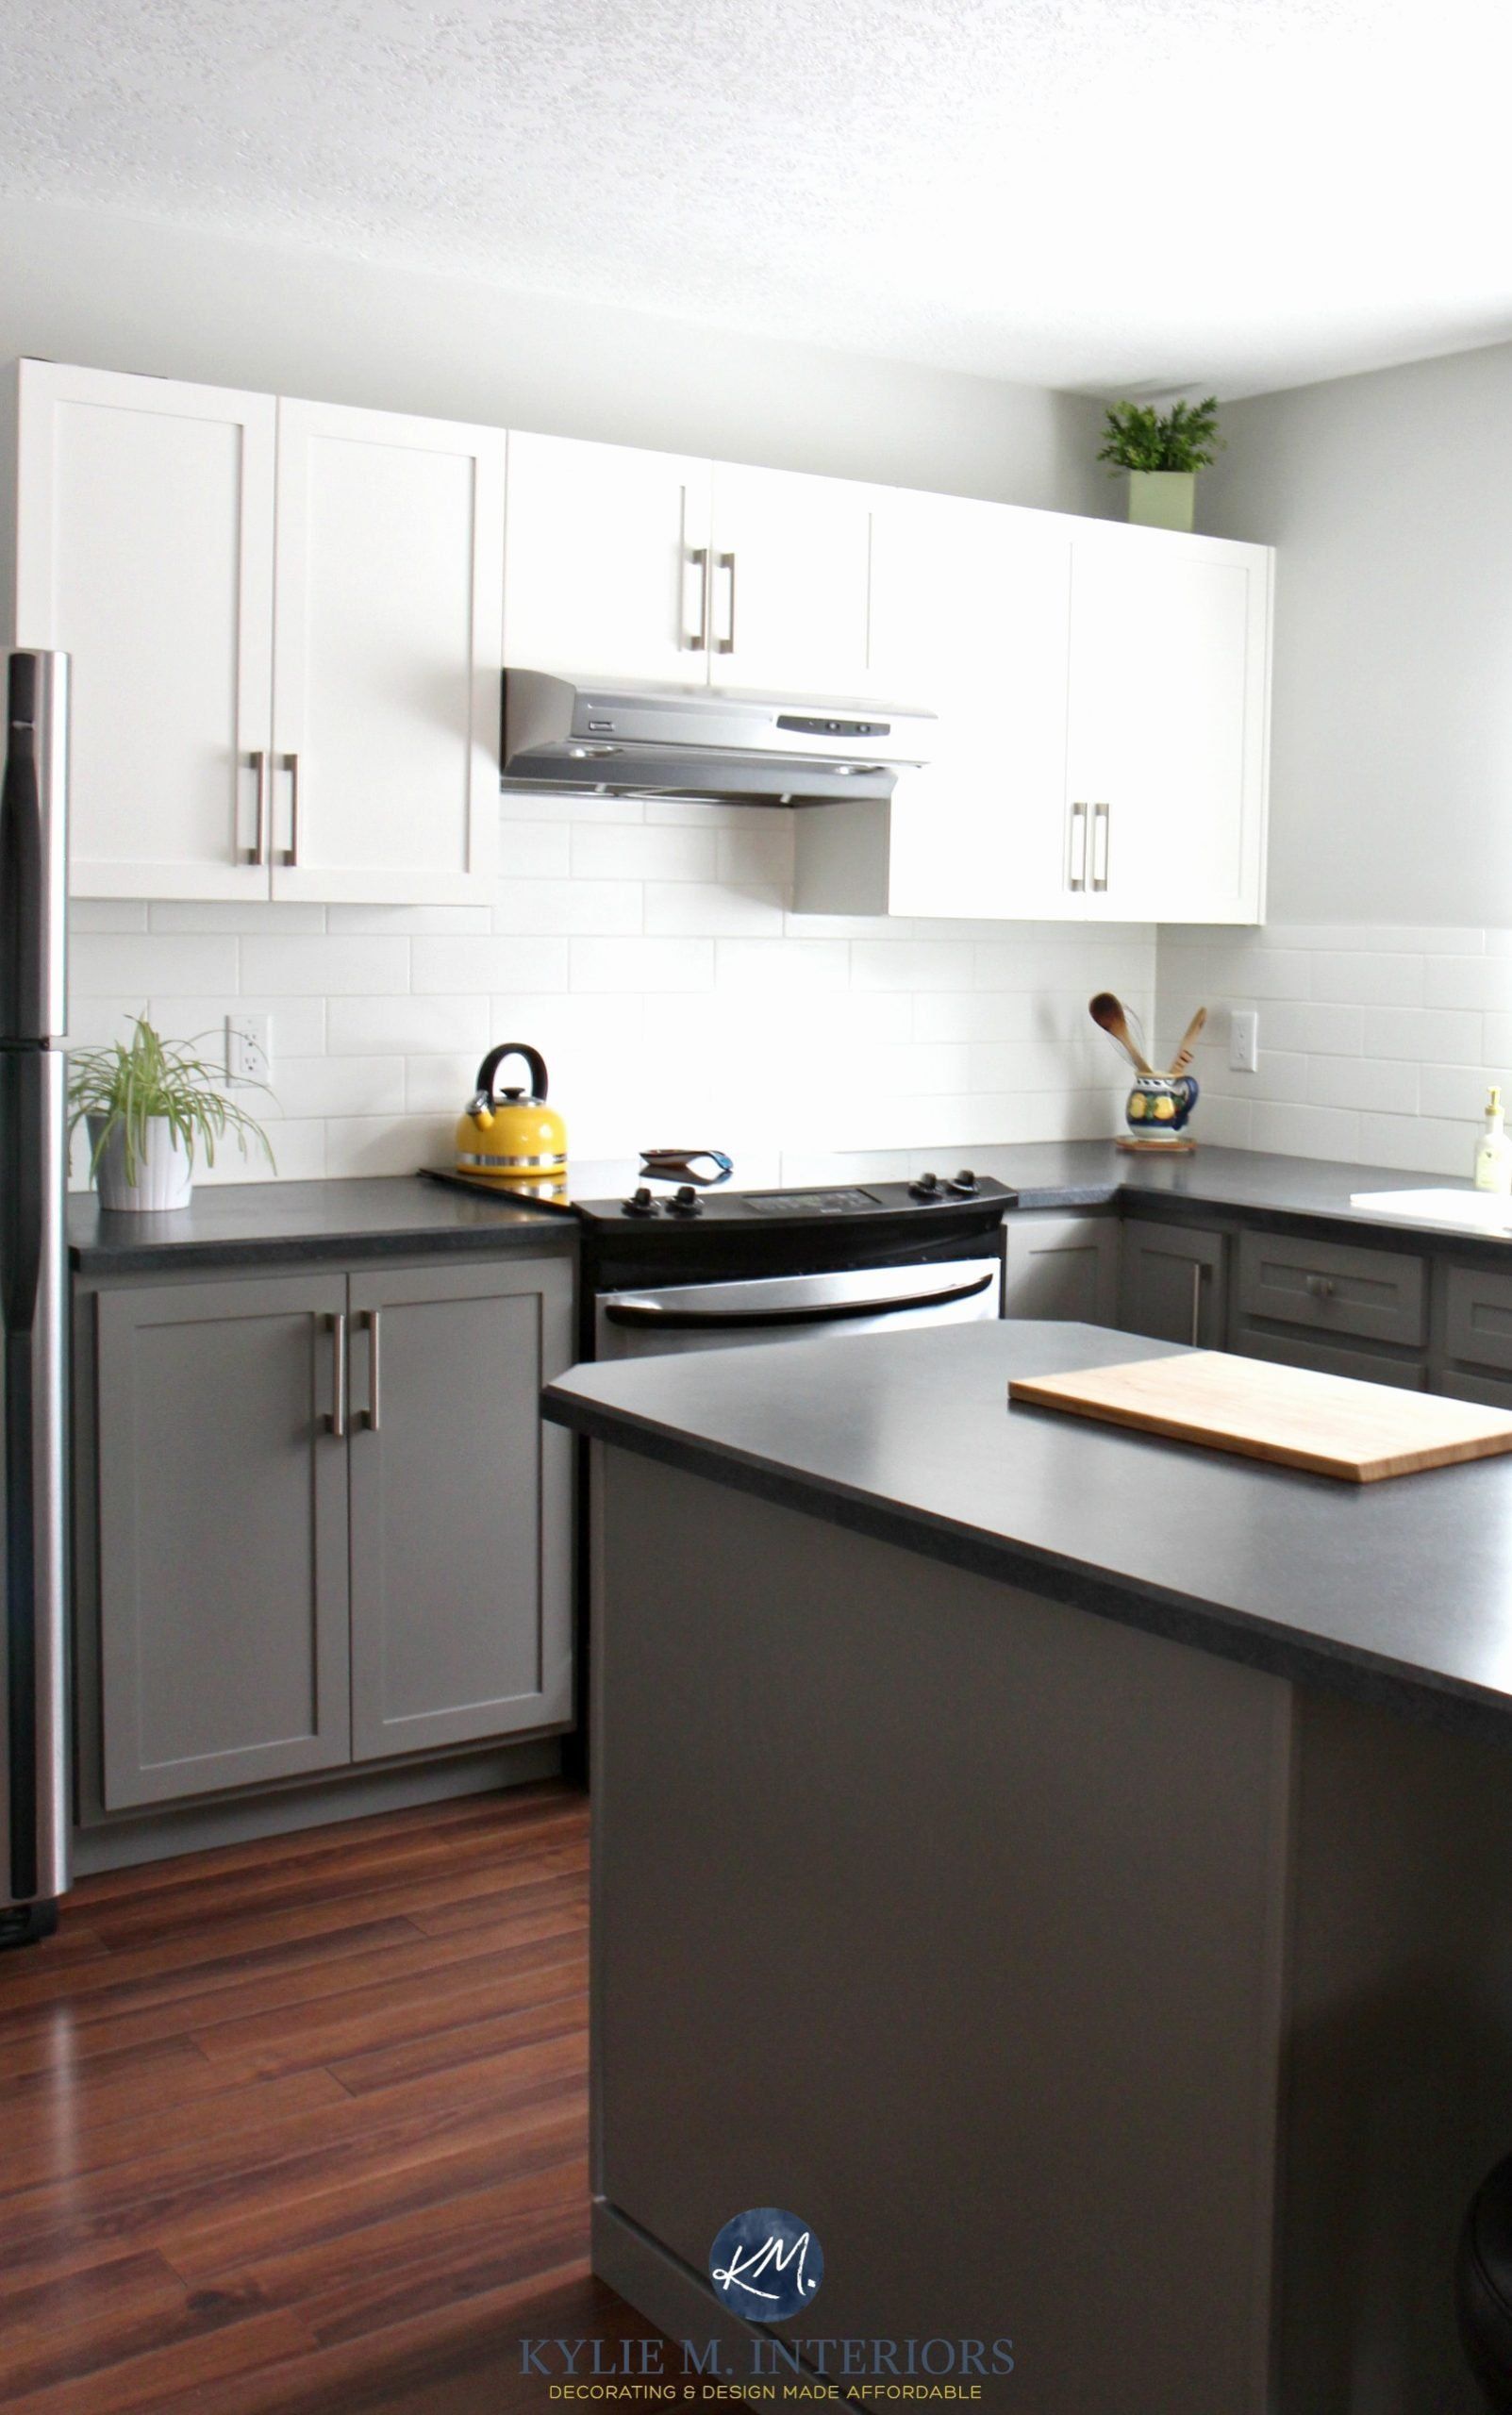 Grey And Red Kitchen Inspirational Grey And Red Kitchen Cabinets Home Design I In 2020 Kitchen Remodel Countertops Black Laminate Countertops Painting Kitchen Cabinets